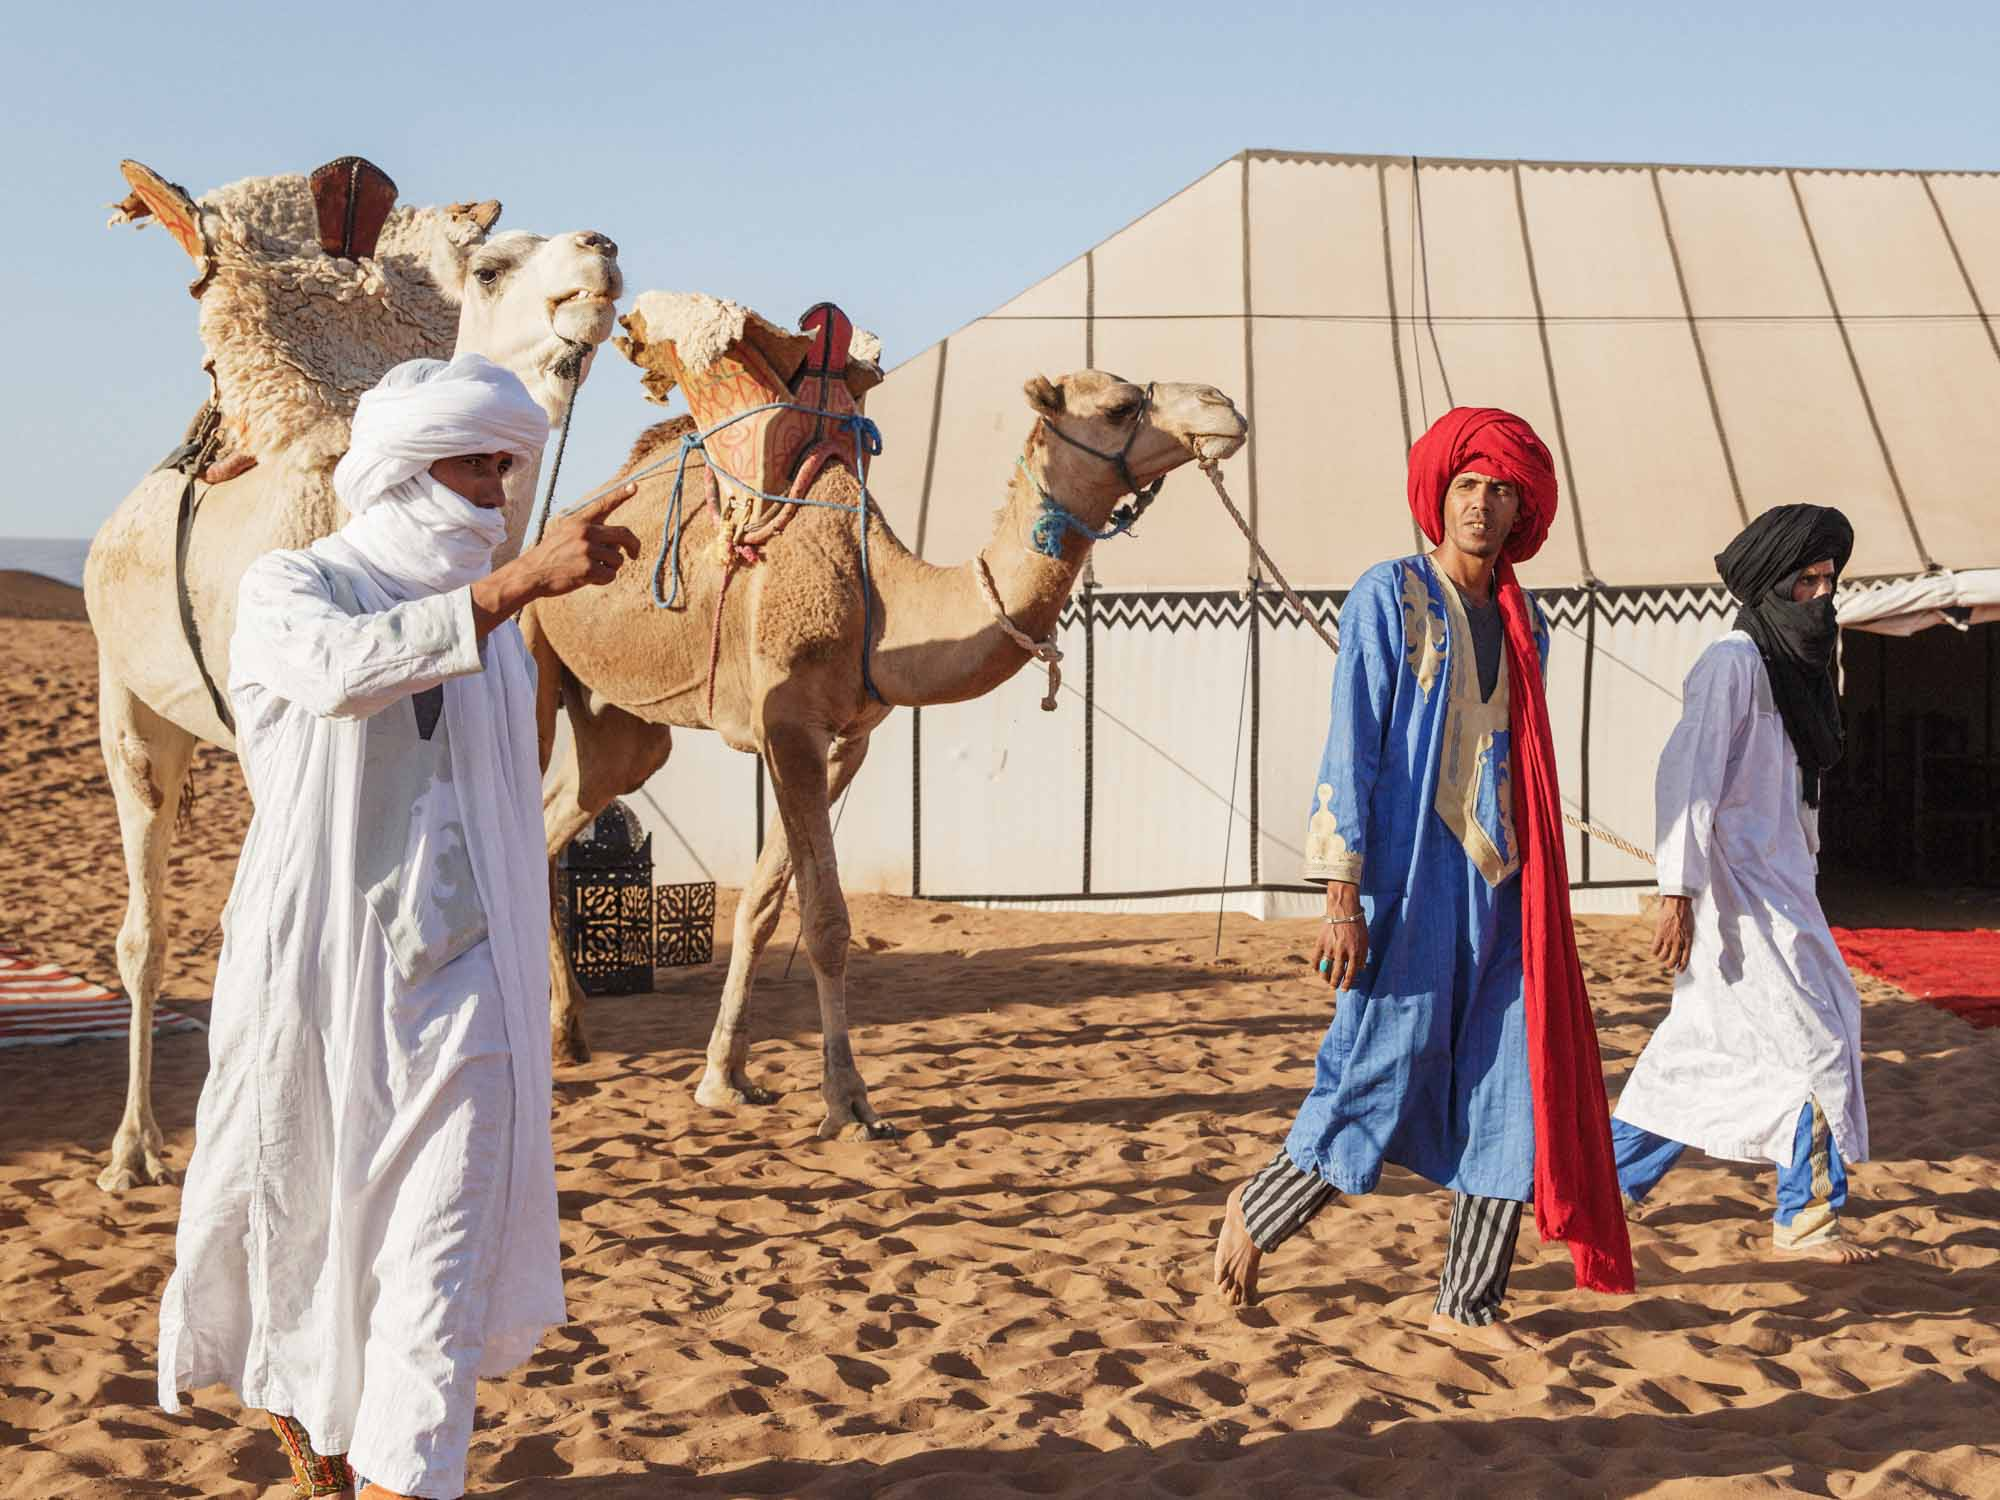 Three Berber Tour Guides With Camels Saddled up at Moroccan Desert Camp